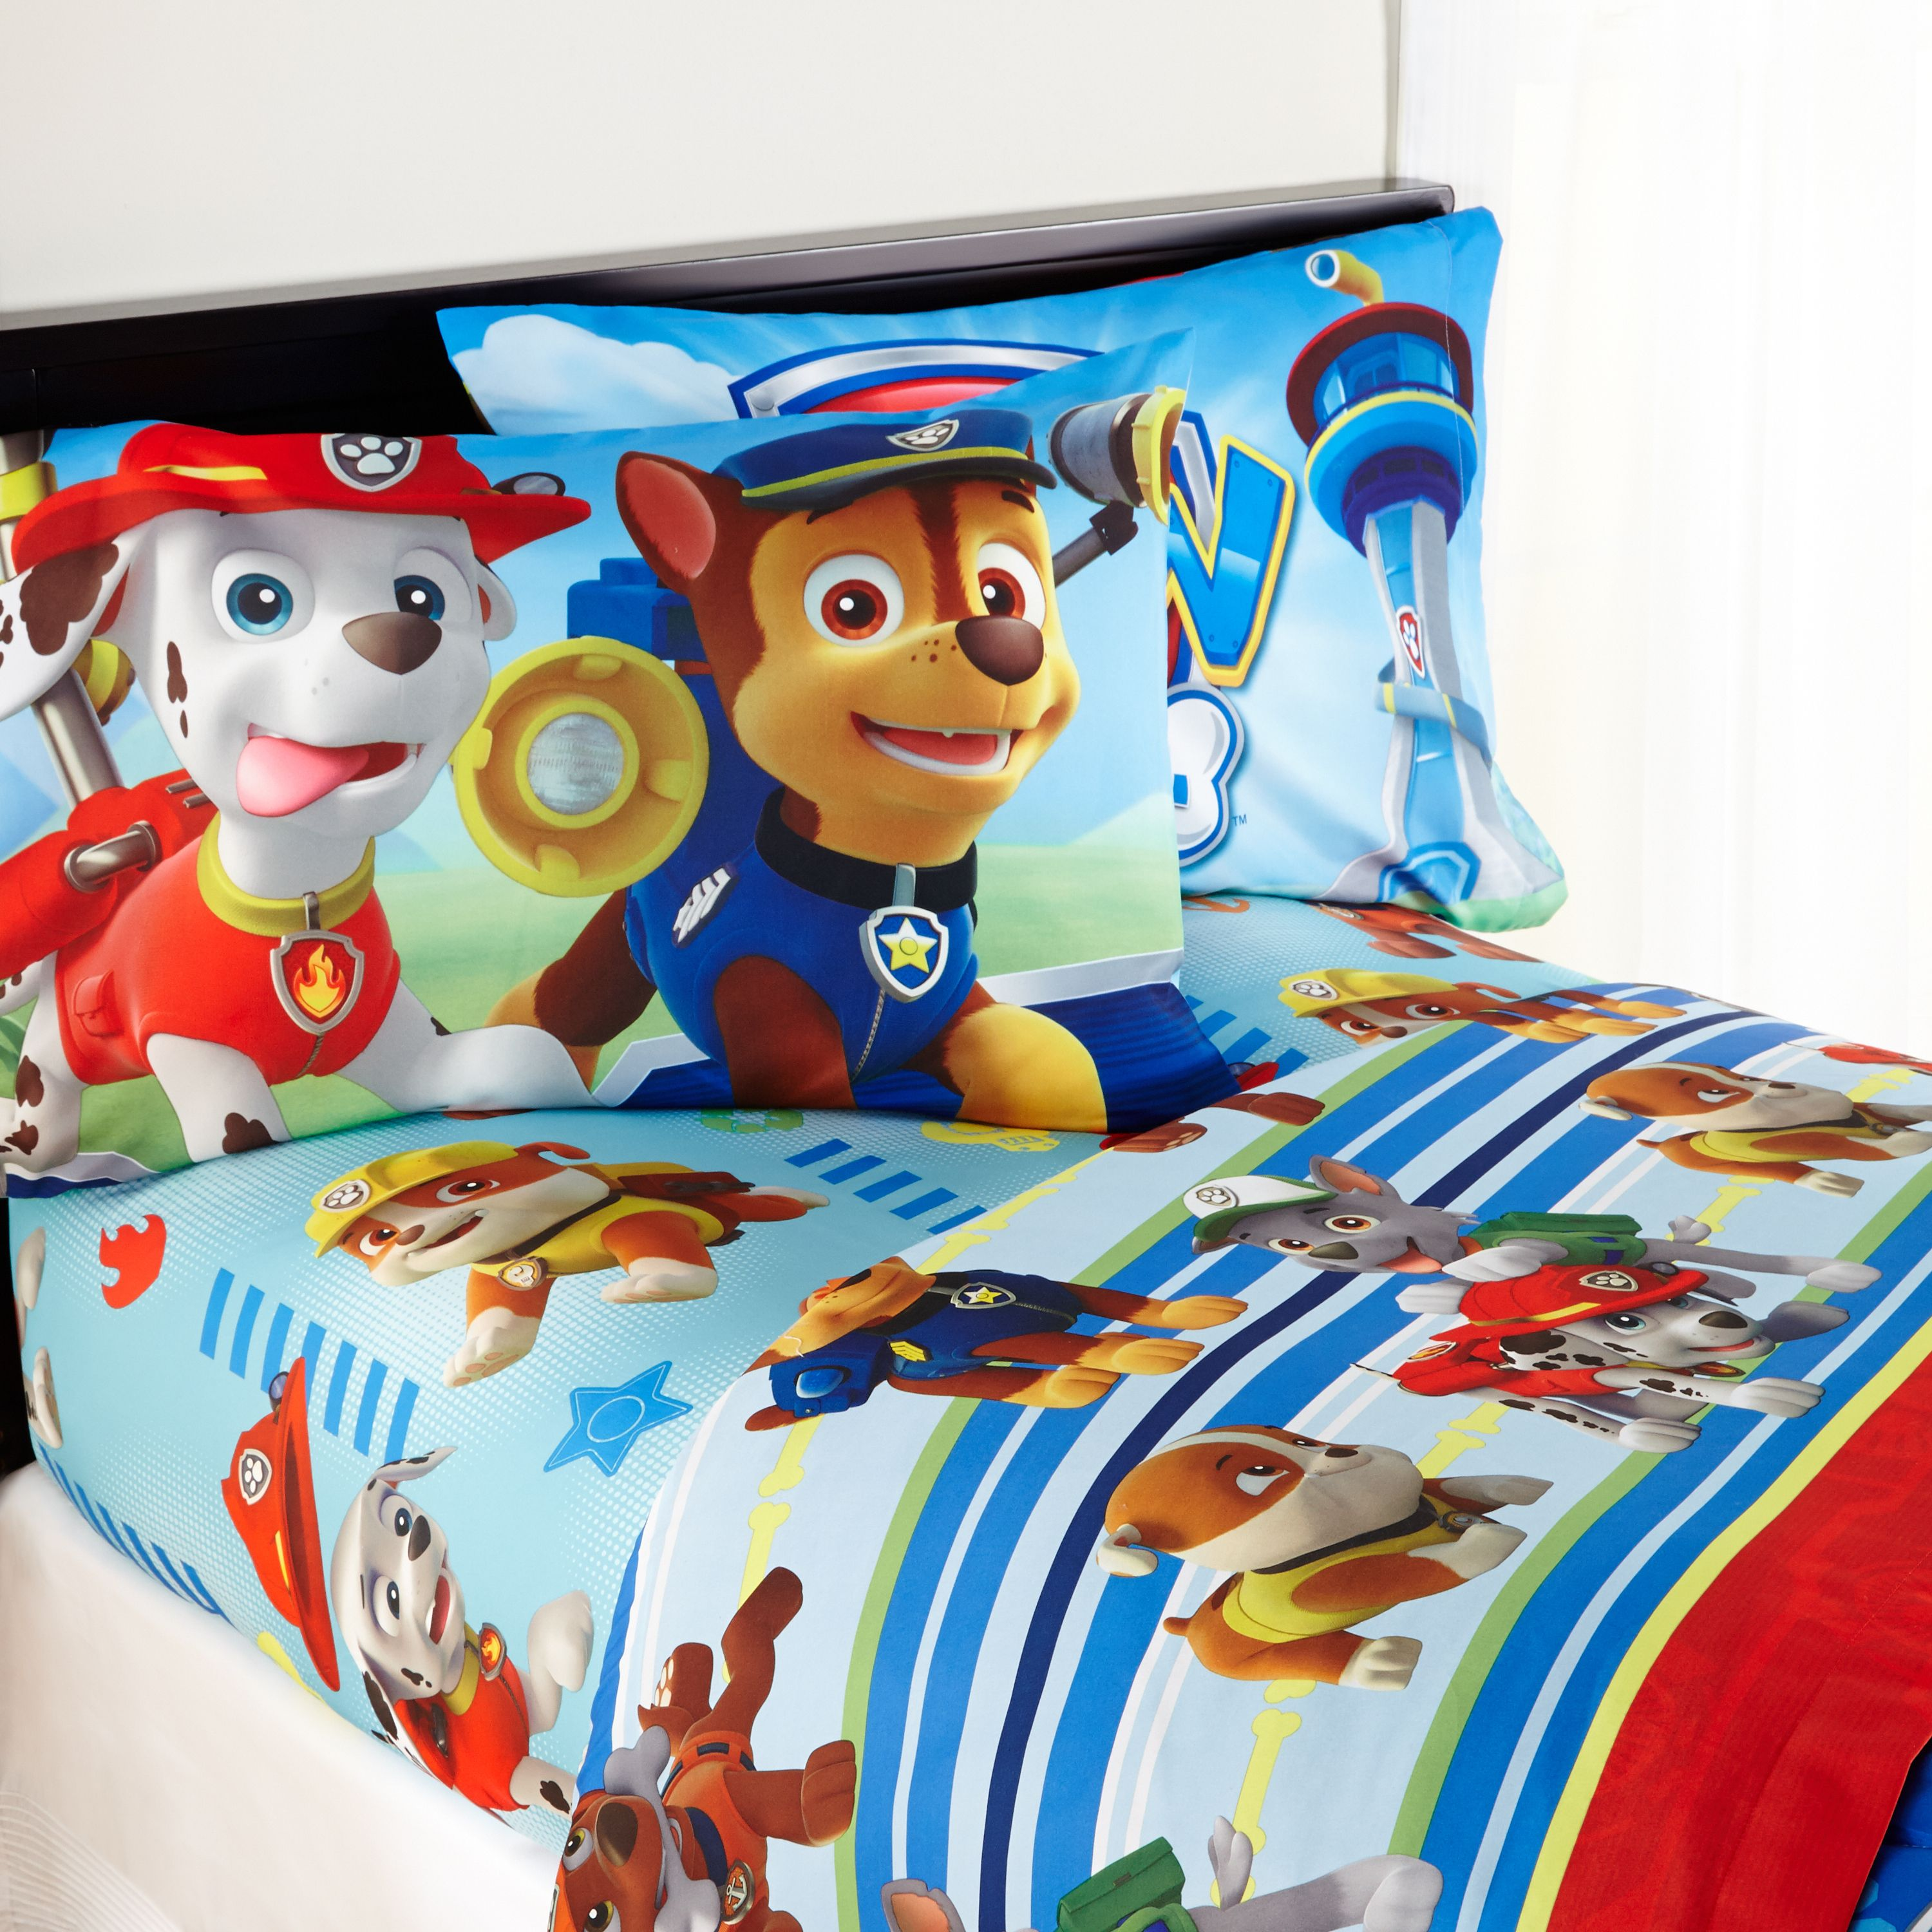 Nickelodeon Paw Patrol Puppy Hero Kids Sheet Set, 1 Each